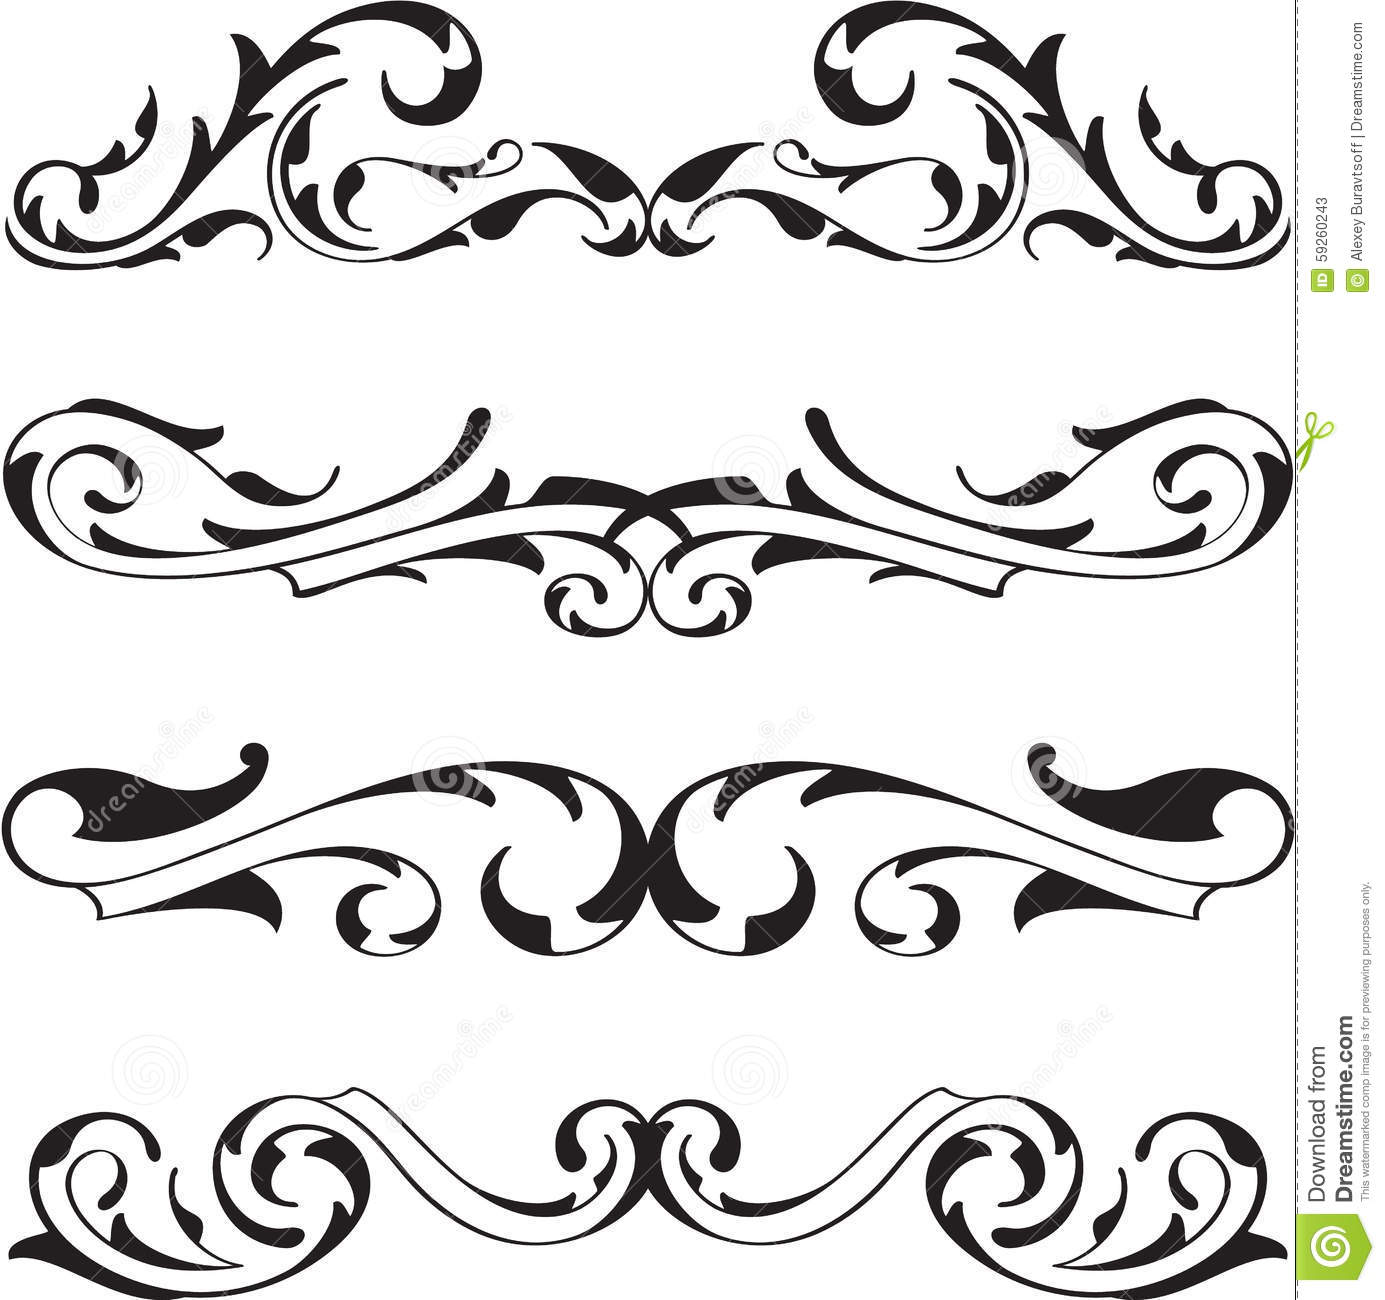 Victorian Design Elements divide victorian design elements set stock vector - image: 59260243